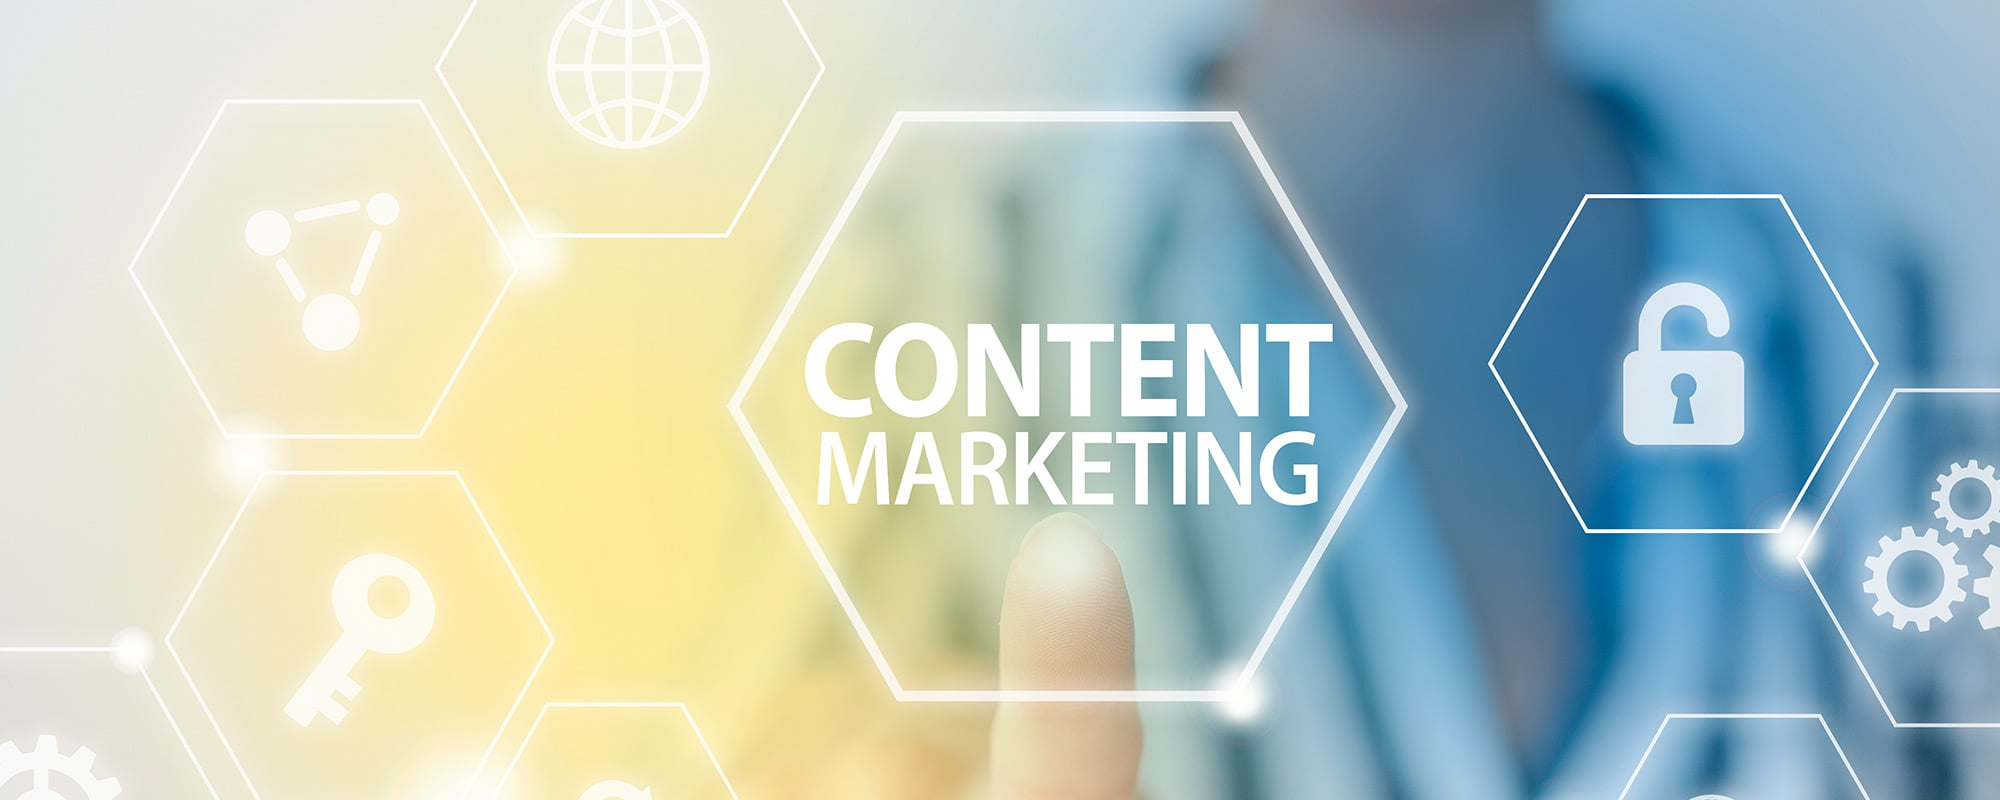 AEM 6.2: A New Focus on Content Marketing and Velocity